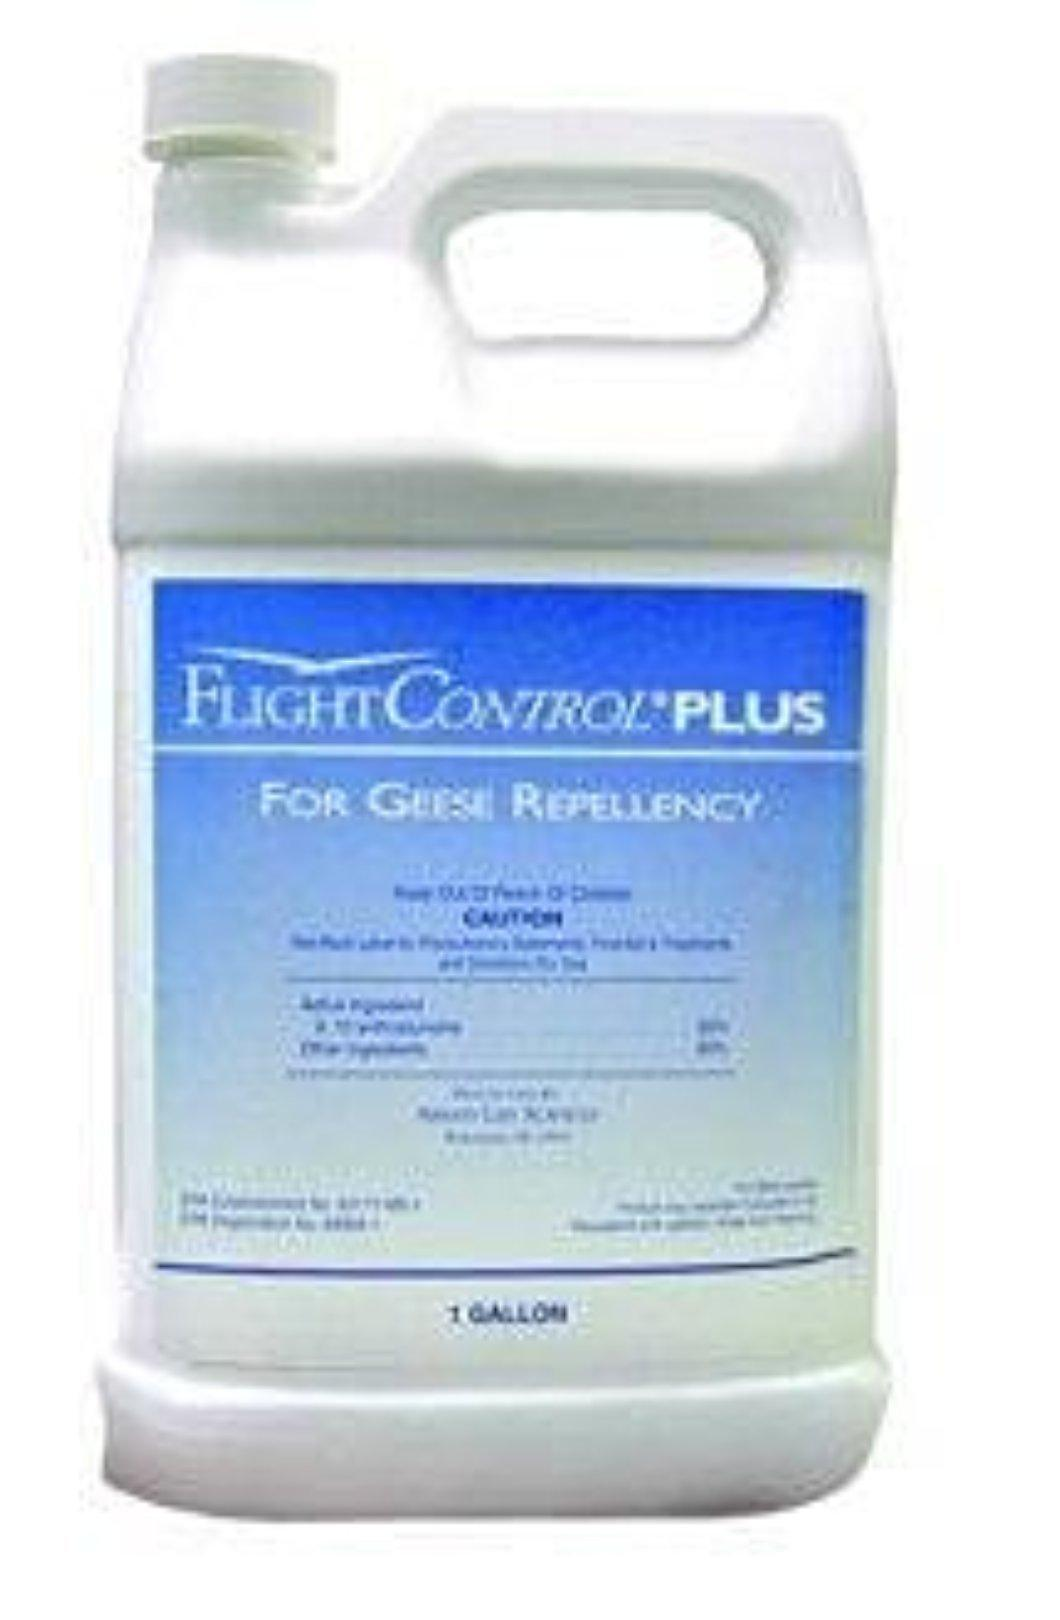 Repellents - Flight Control Plus Goose Repellent